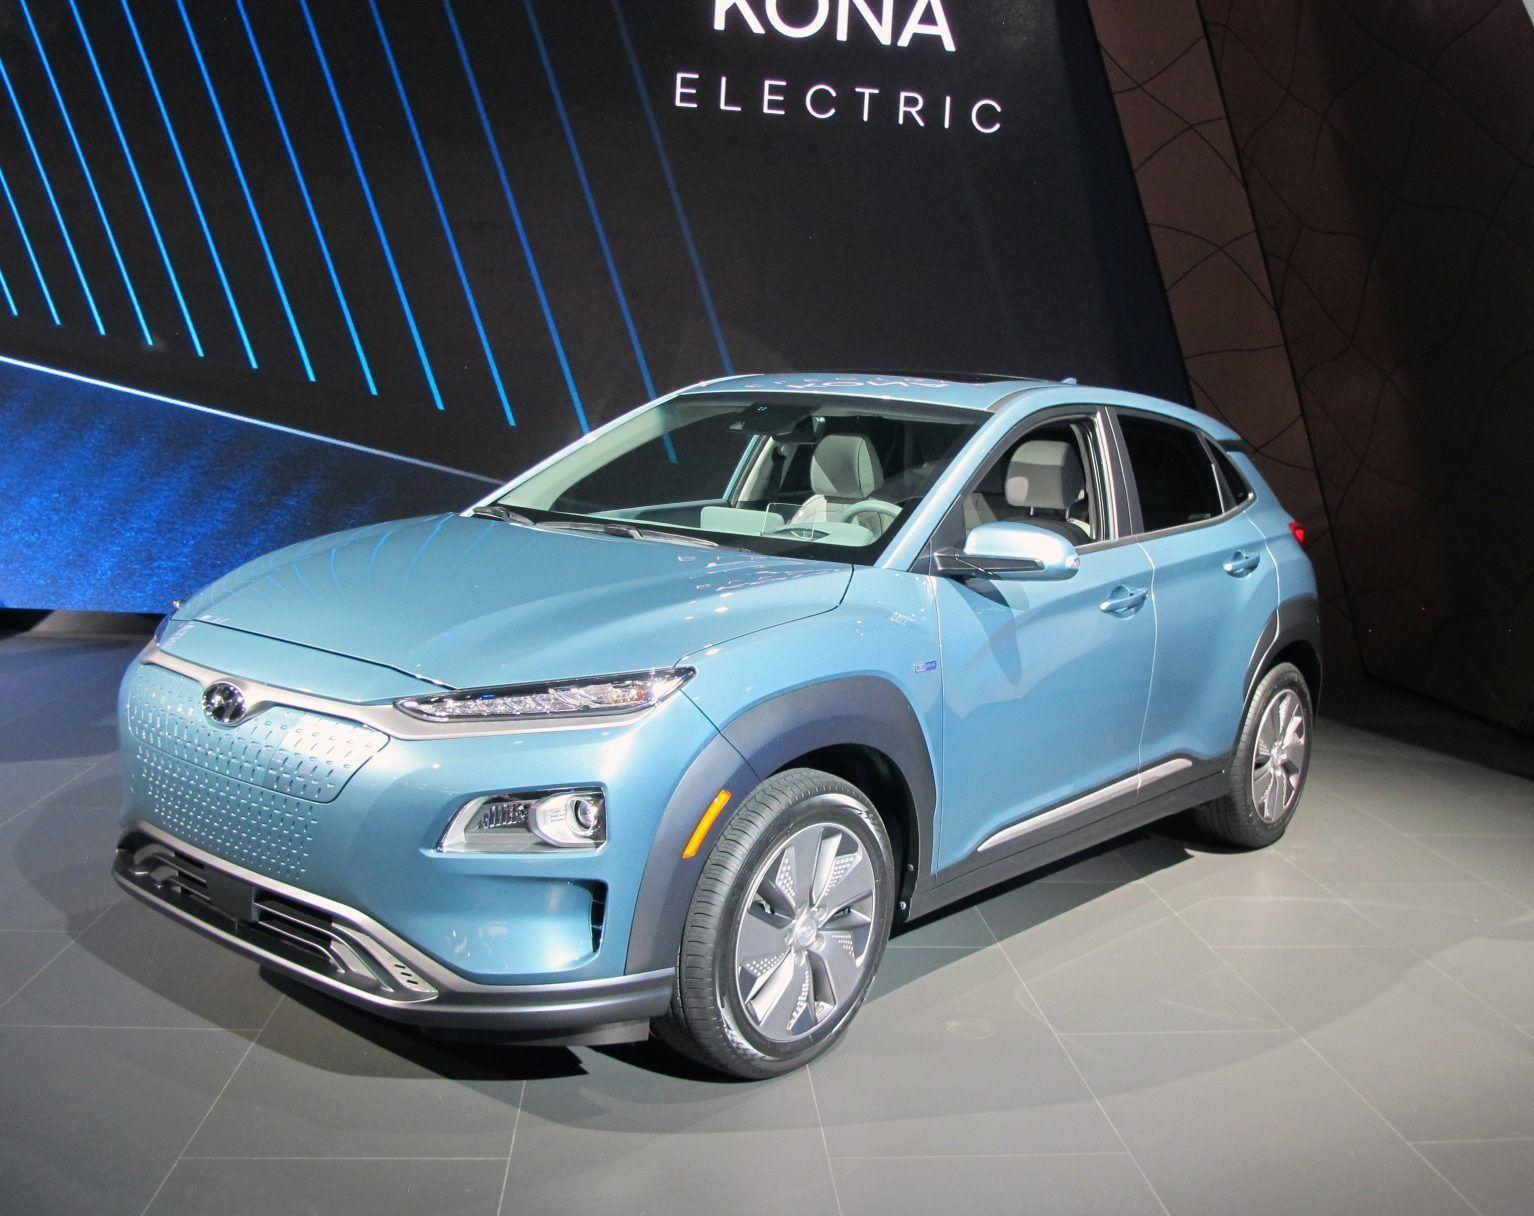 2019 Hyundai Kona EV Interior HD Wallpapers